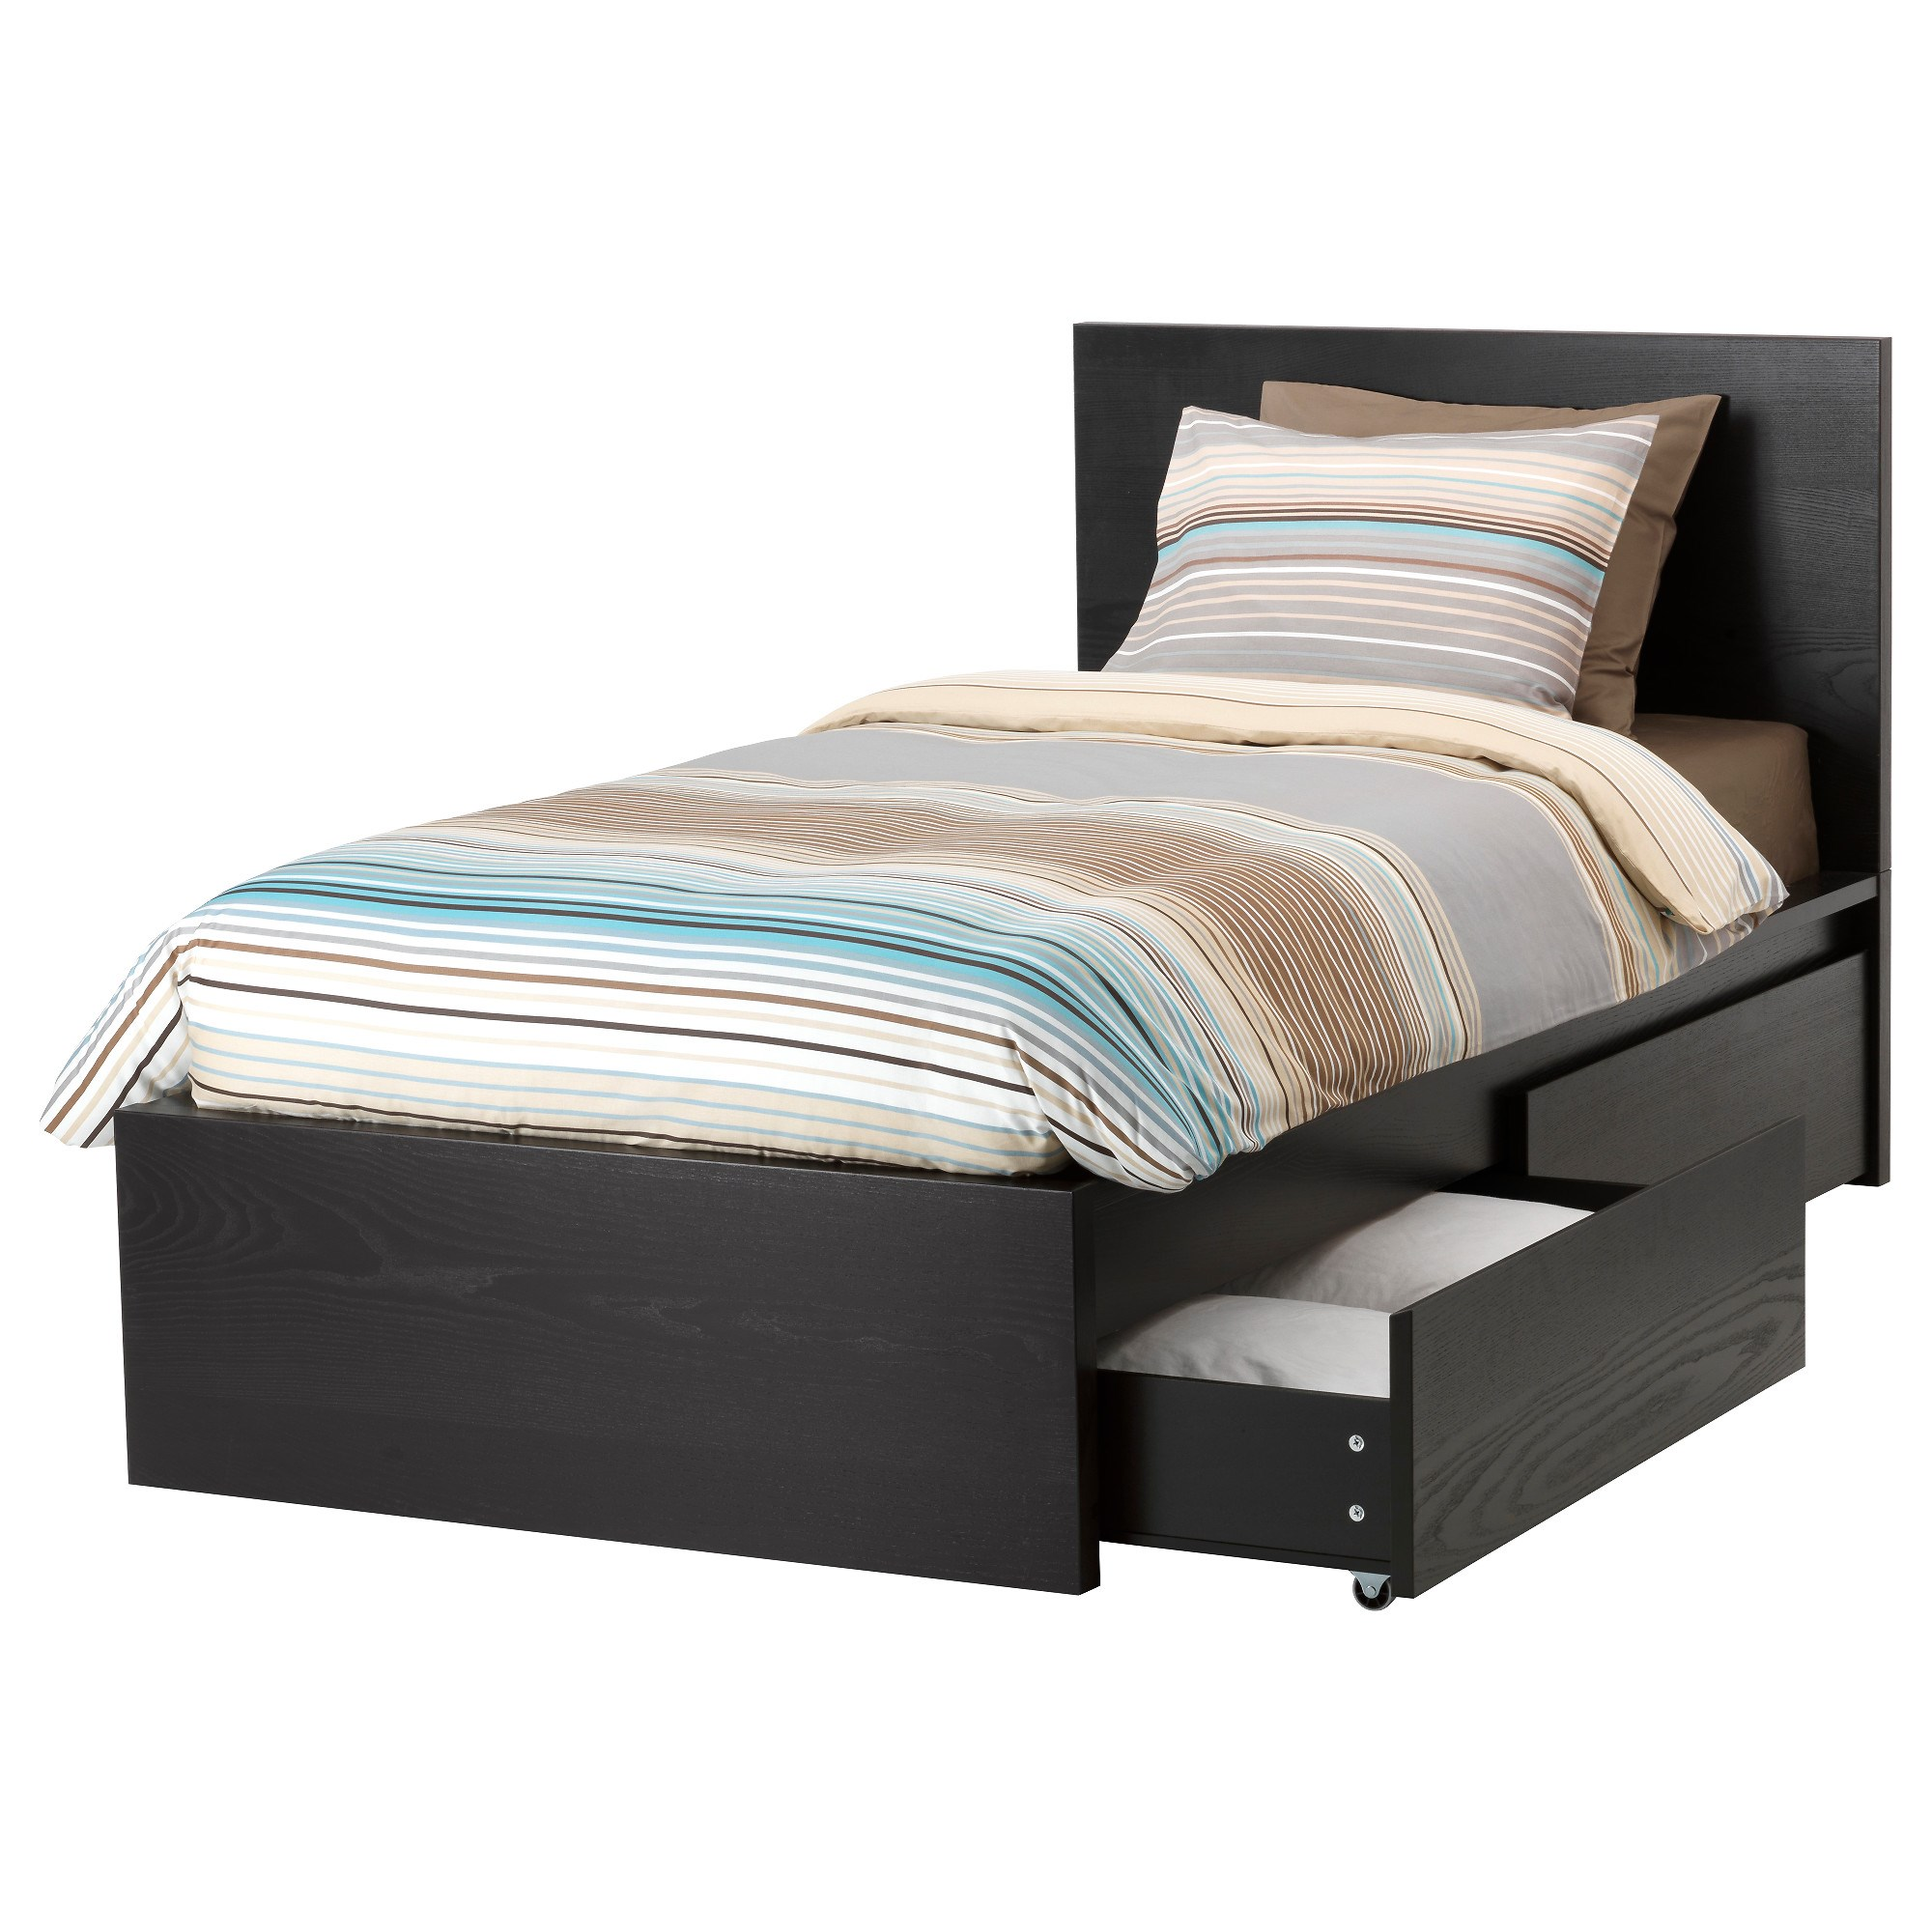 Malm LurÖysingle Bed With 2 Storage Bo Blackbrown